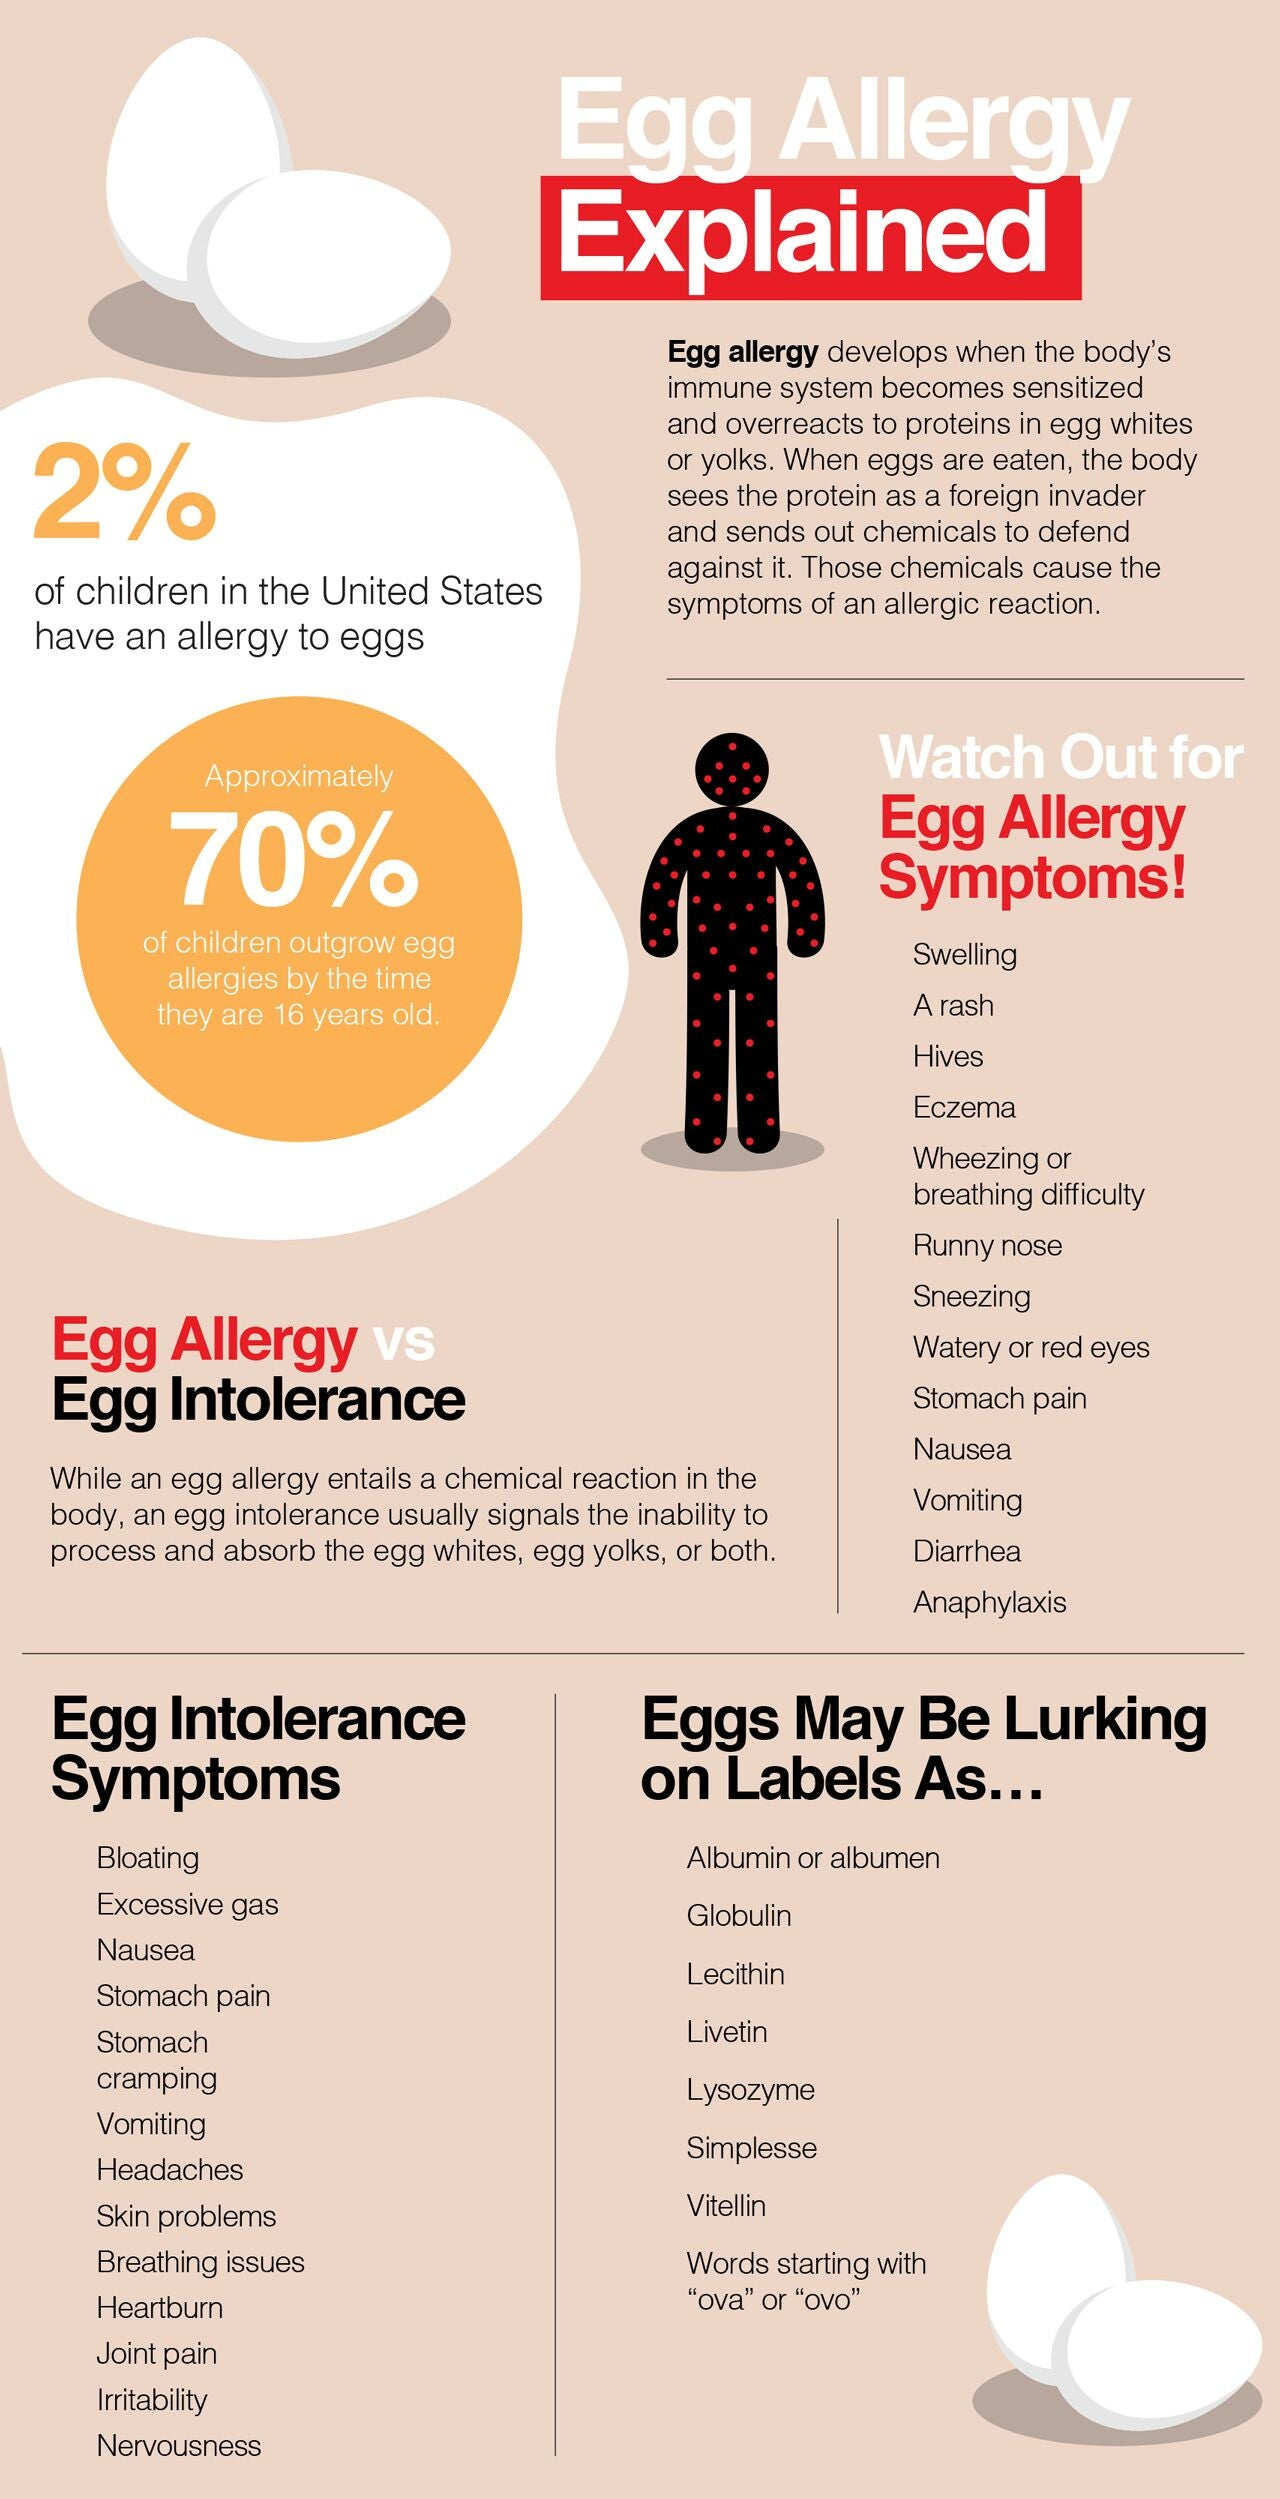 Facts about egg allergies